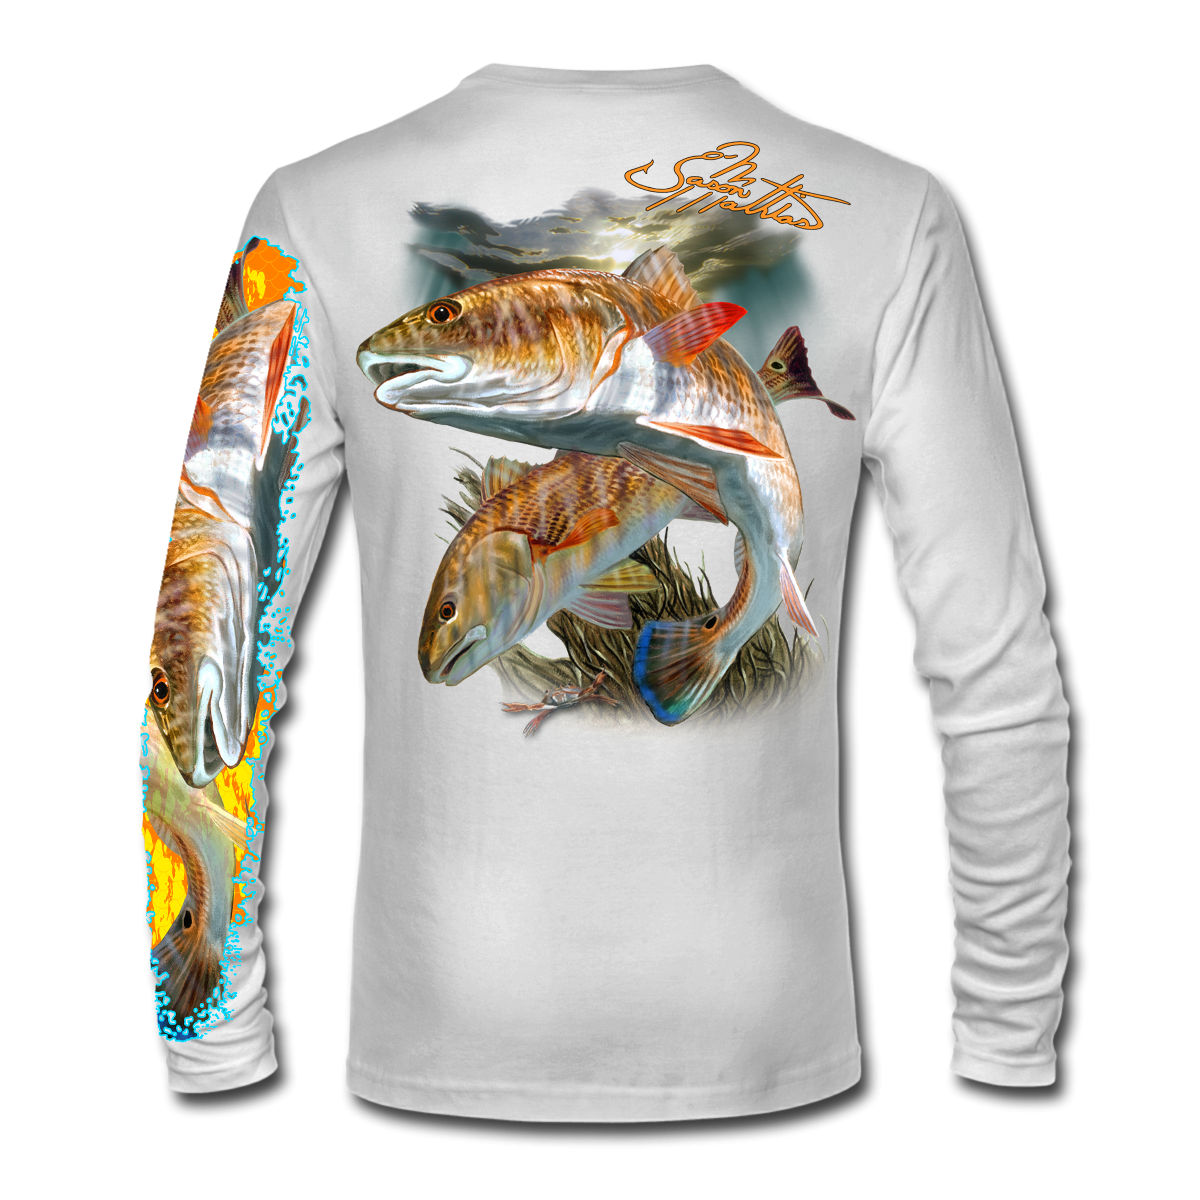 redfish-shirt-white-back-jason-mathias.png